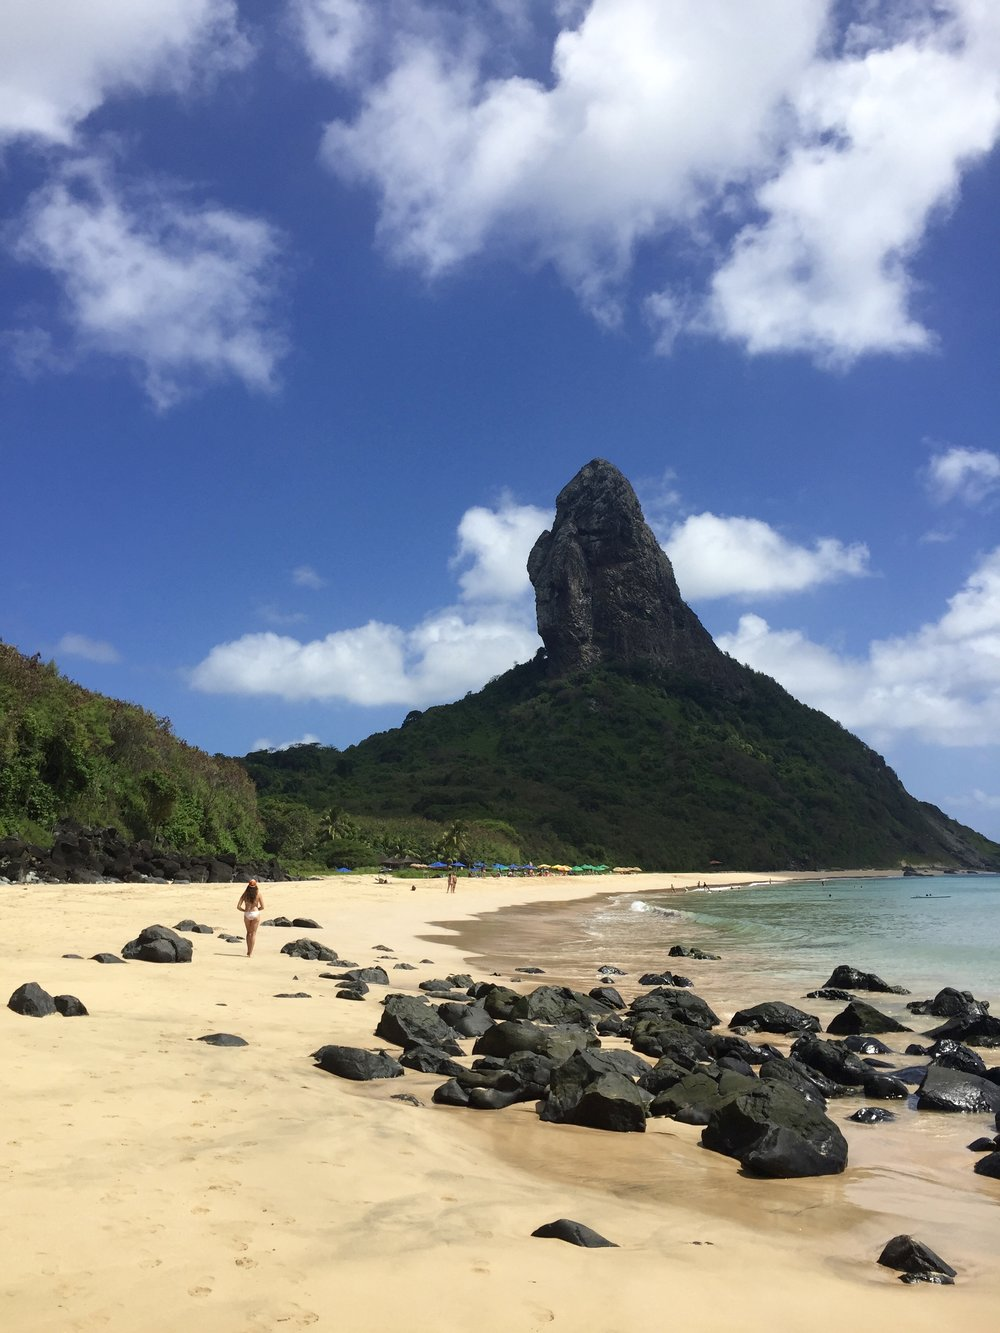 Fernando de Noronha's Praia da Conceição, with Morro do Pico in the background.